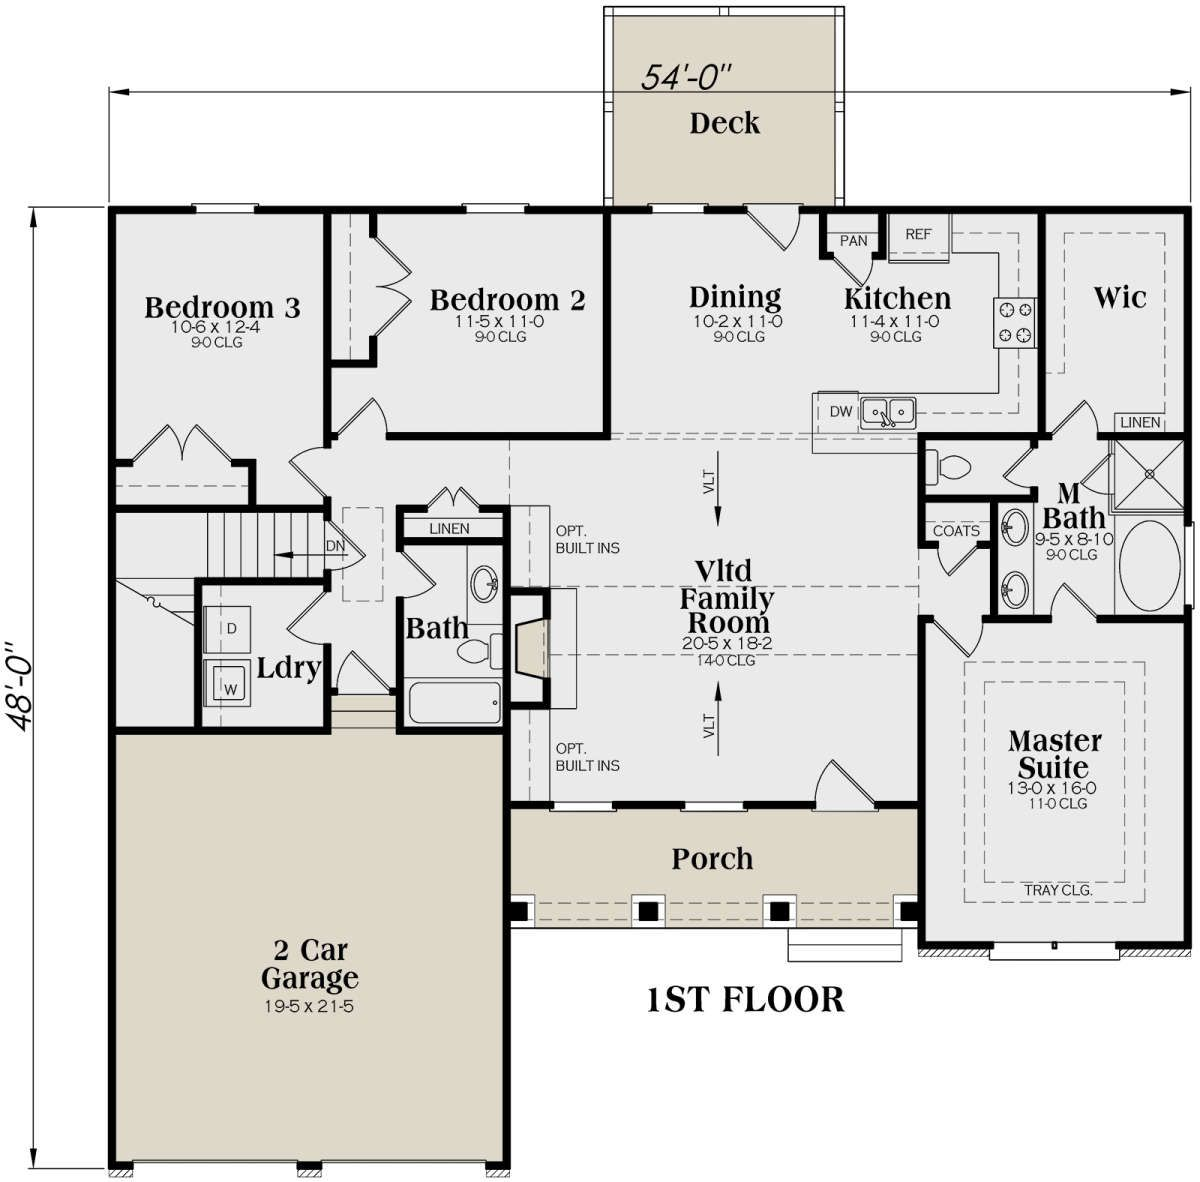 House Plan 009 00025 Country Plan 1 566 Square Feet 3 Bedrooms 2 Bathrooms Best Home Plans House Plans Tiny House Plans